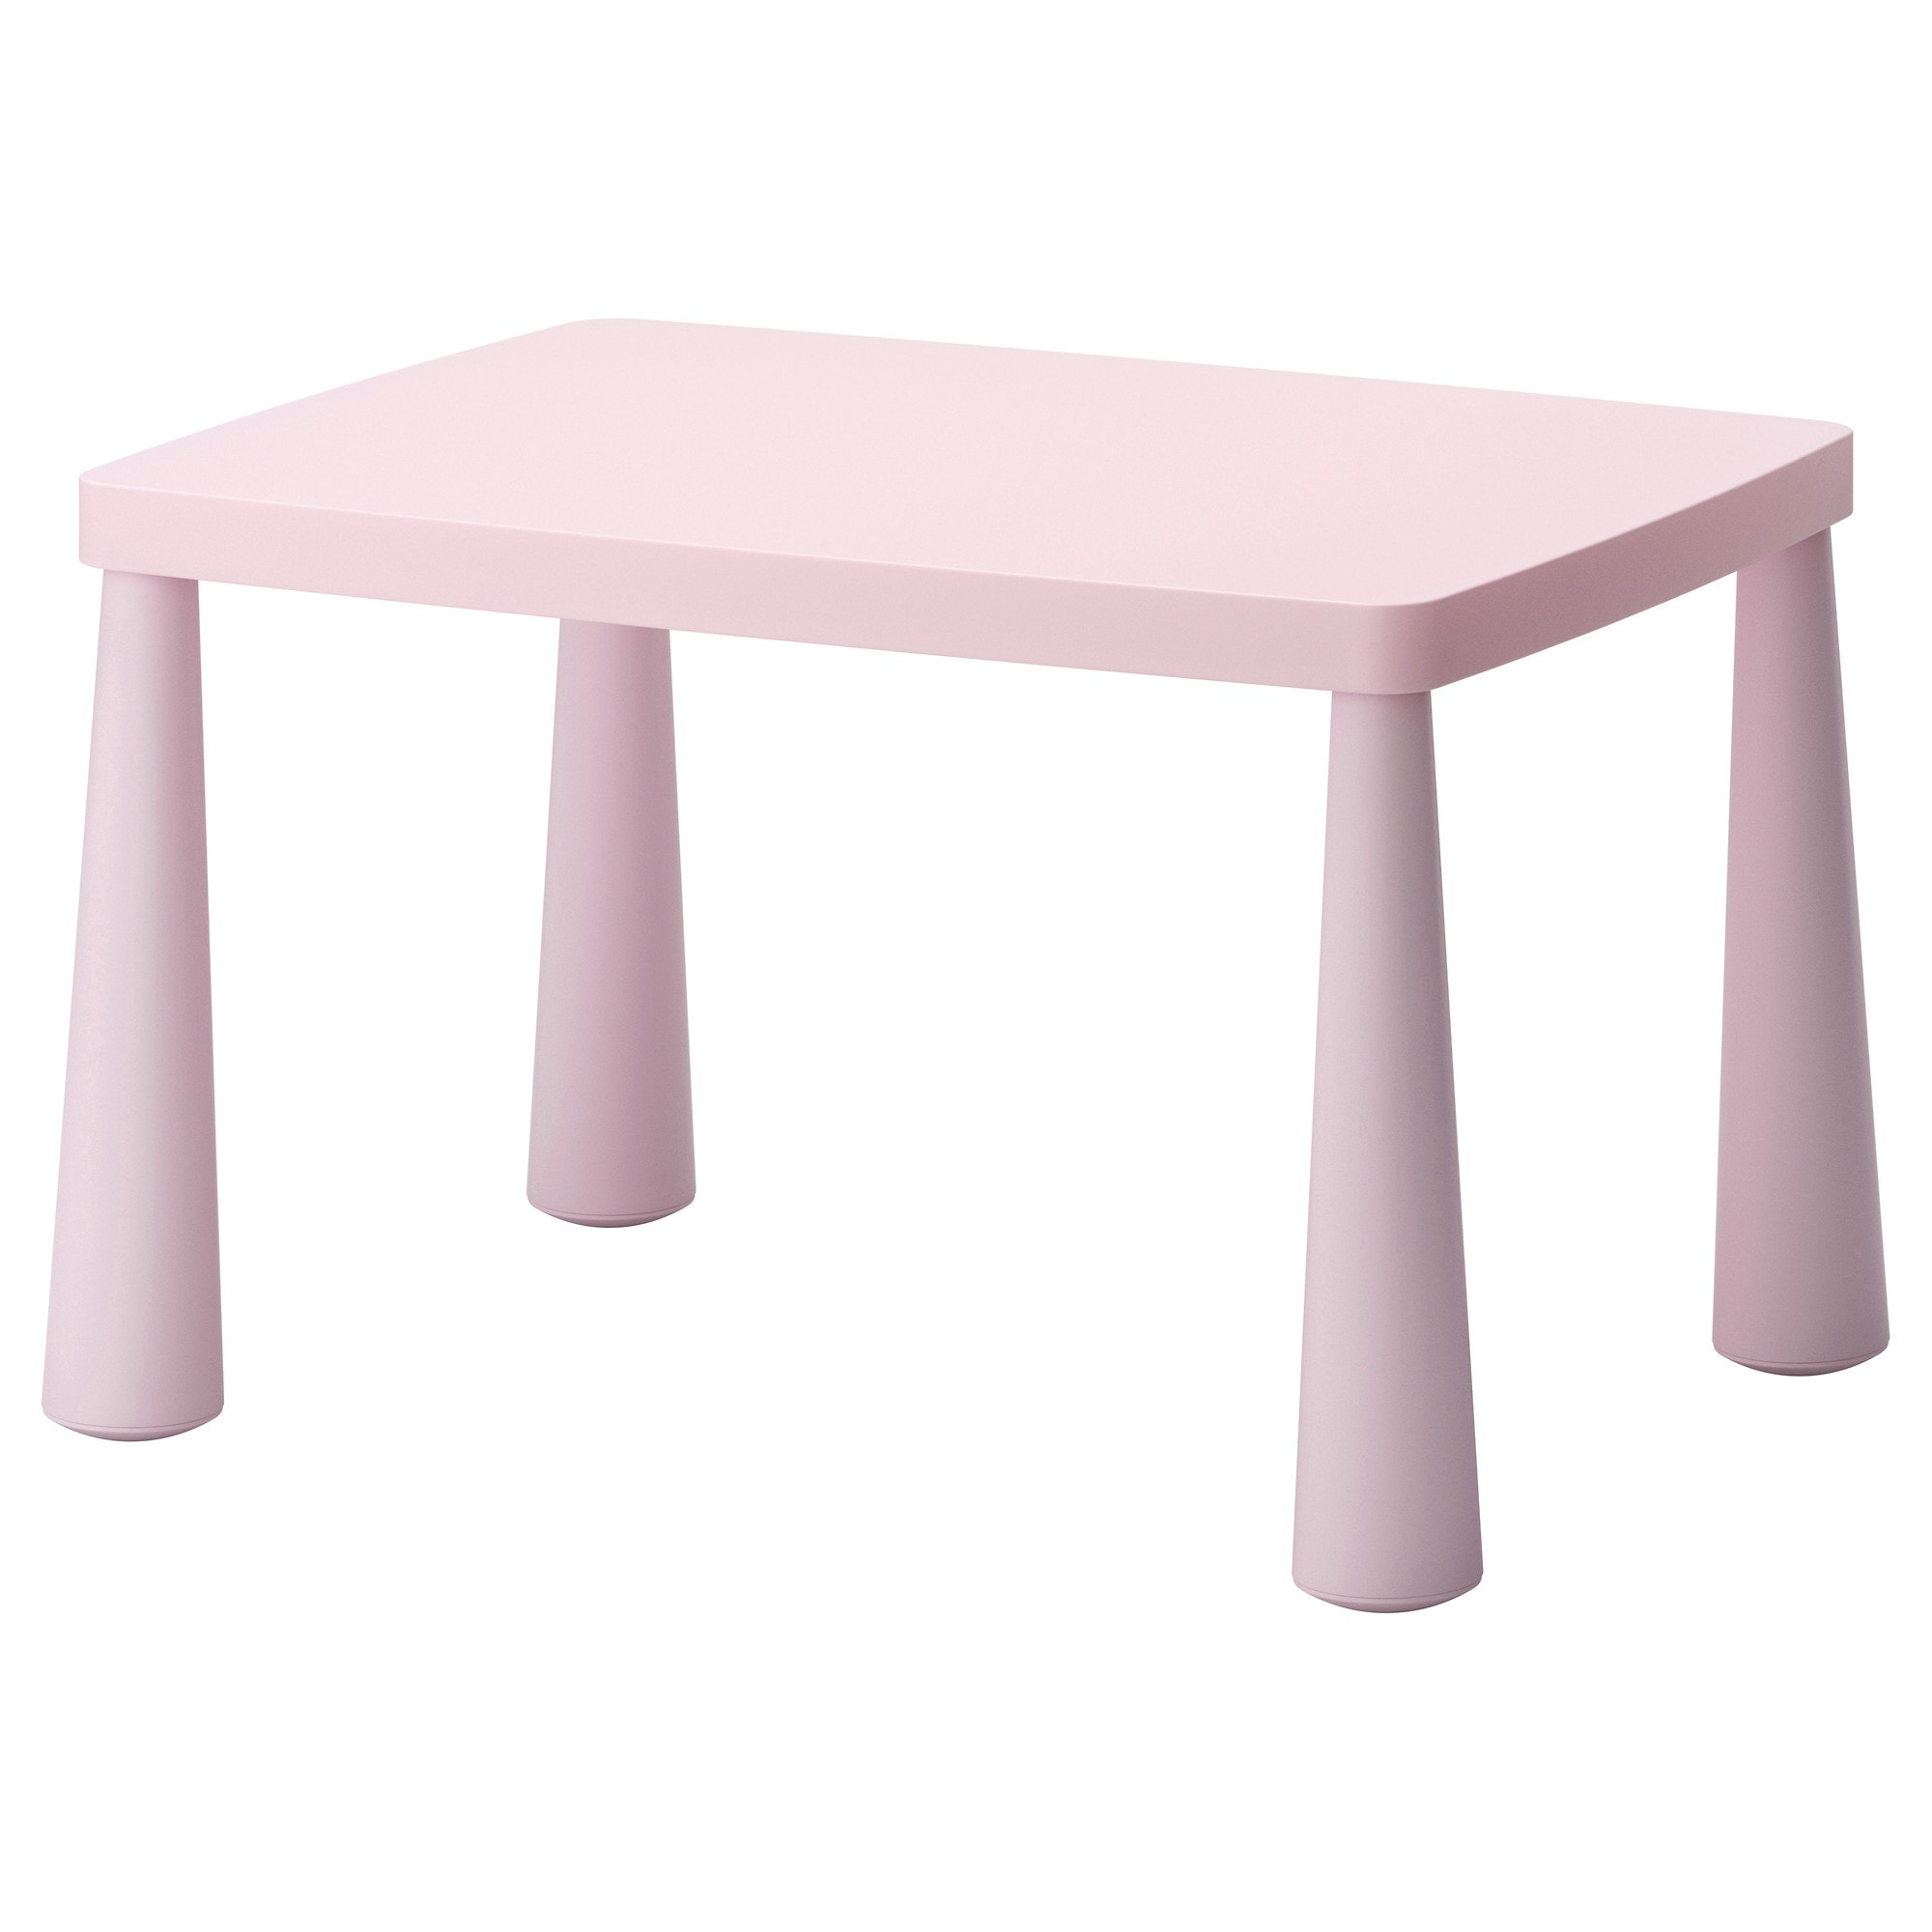 mammut table light pink light pink length 30 3 - Drafting Table Ikea